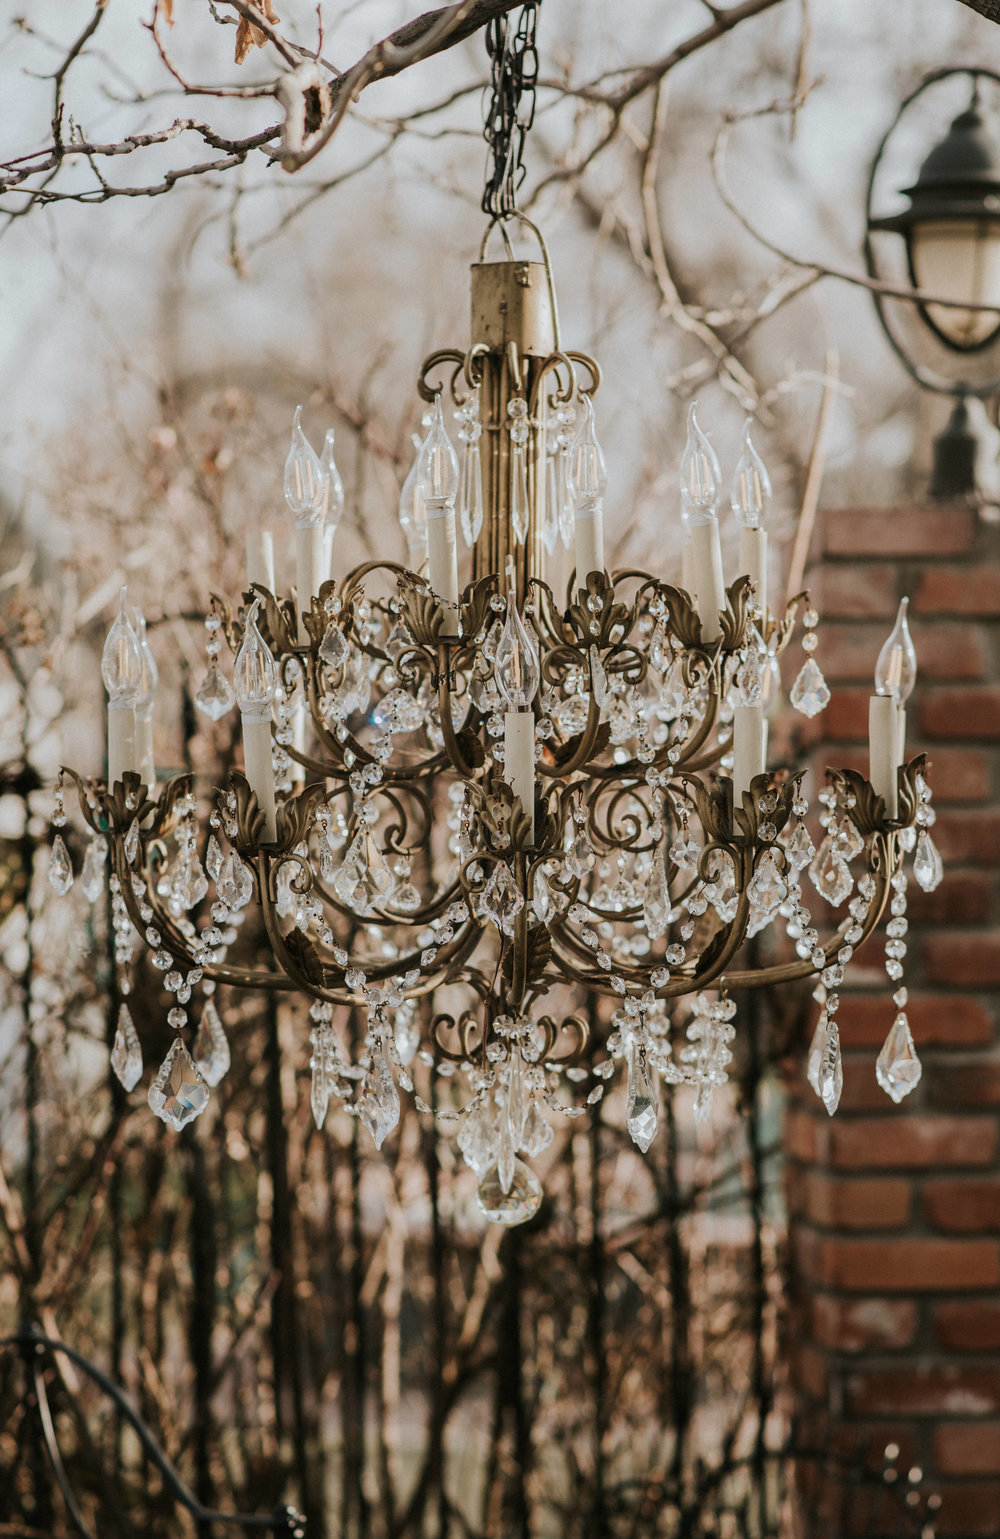 Rustic wedding in the Chandelier Barn at Lionsgate Event Center in Lafayette, Colorado